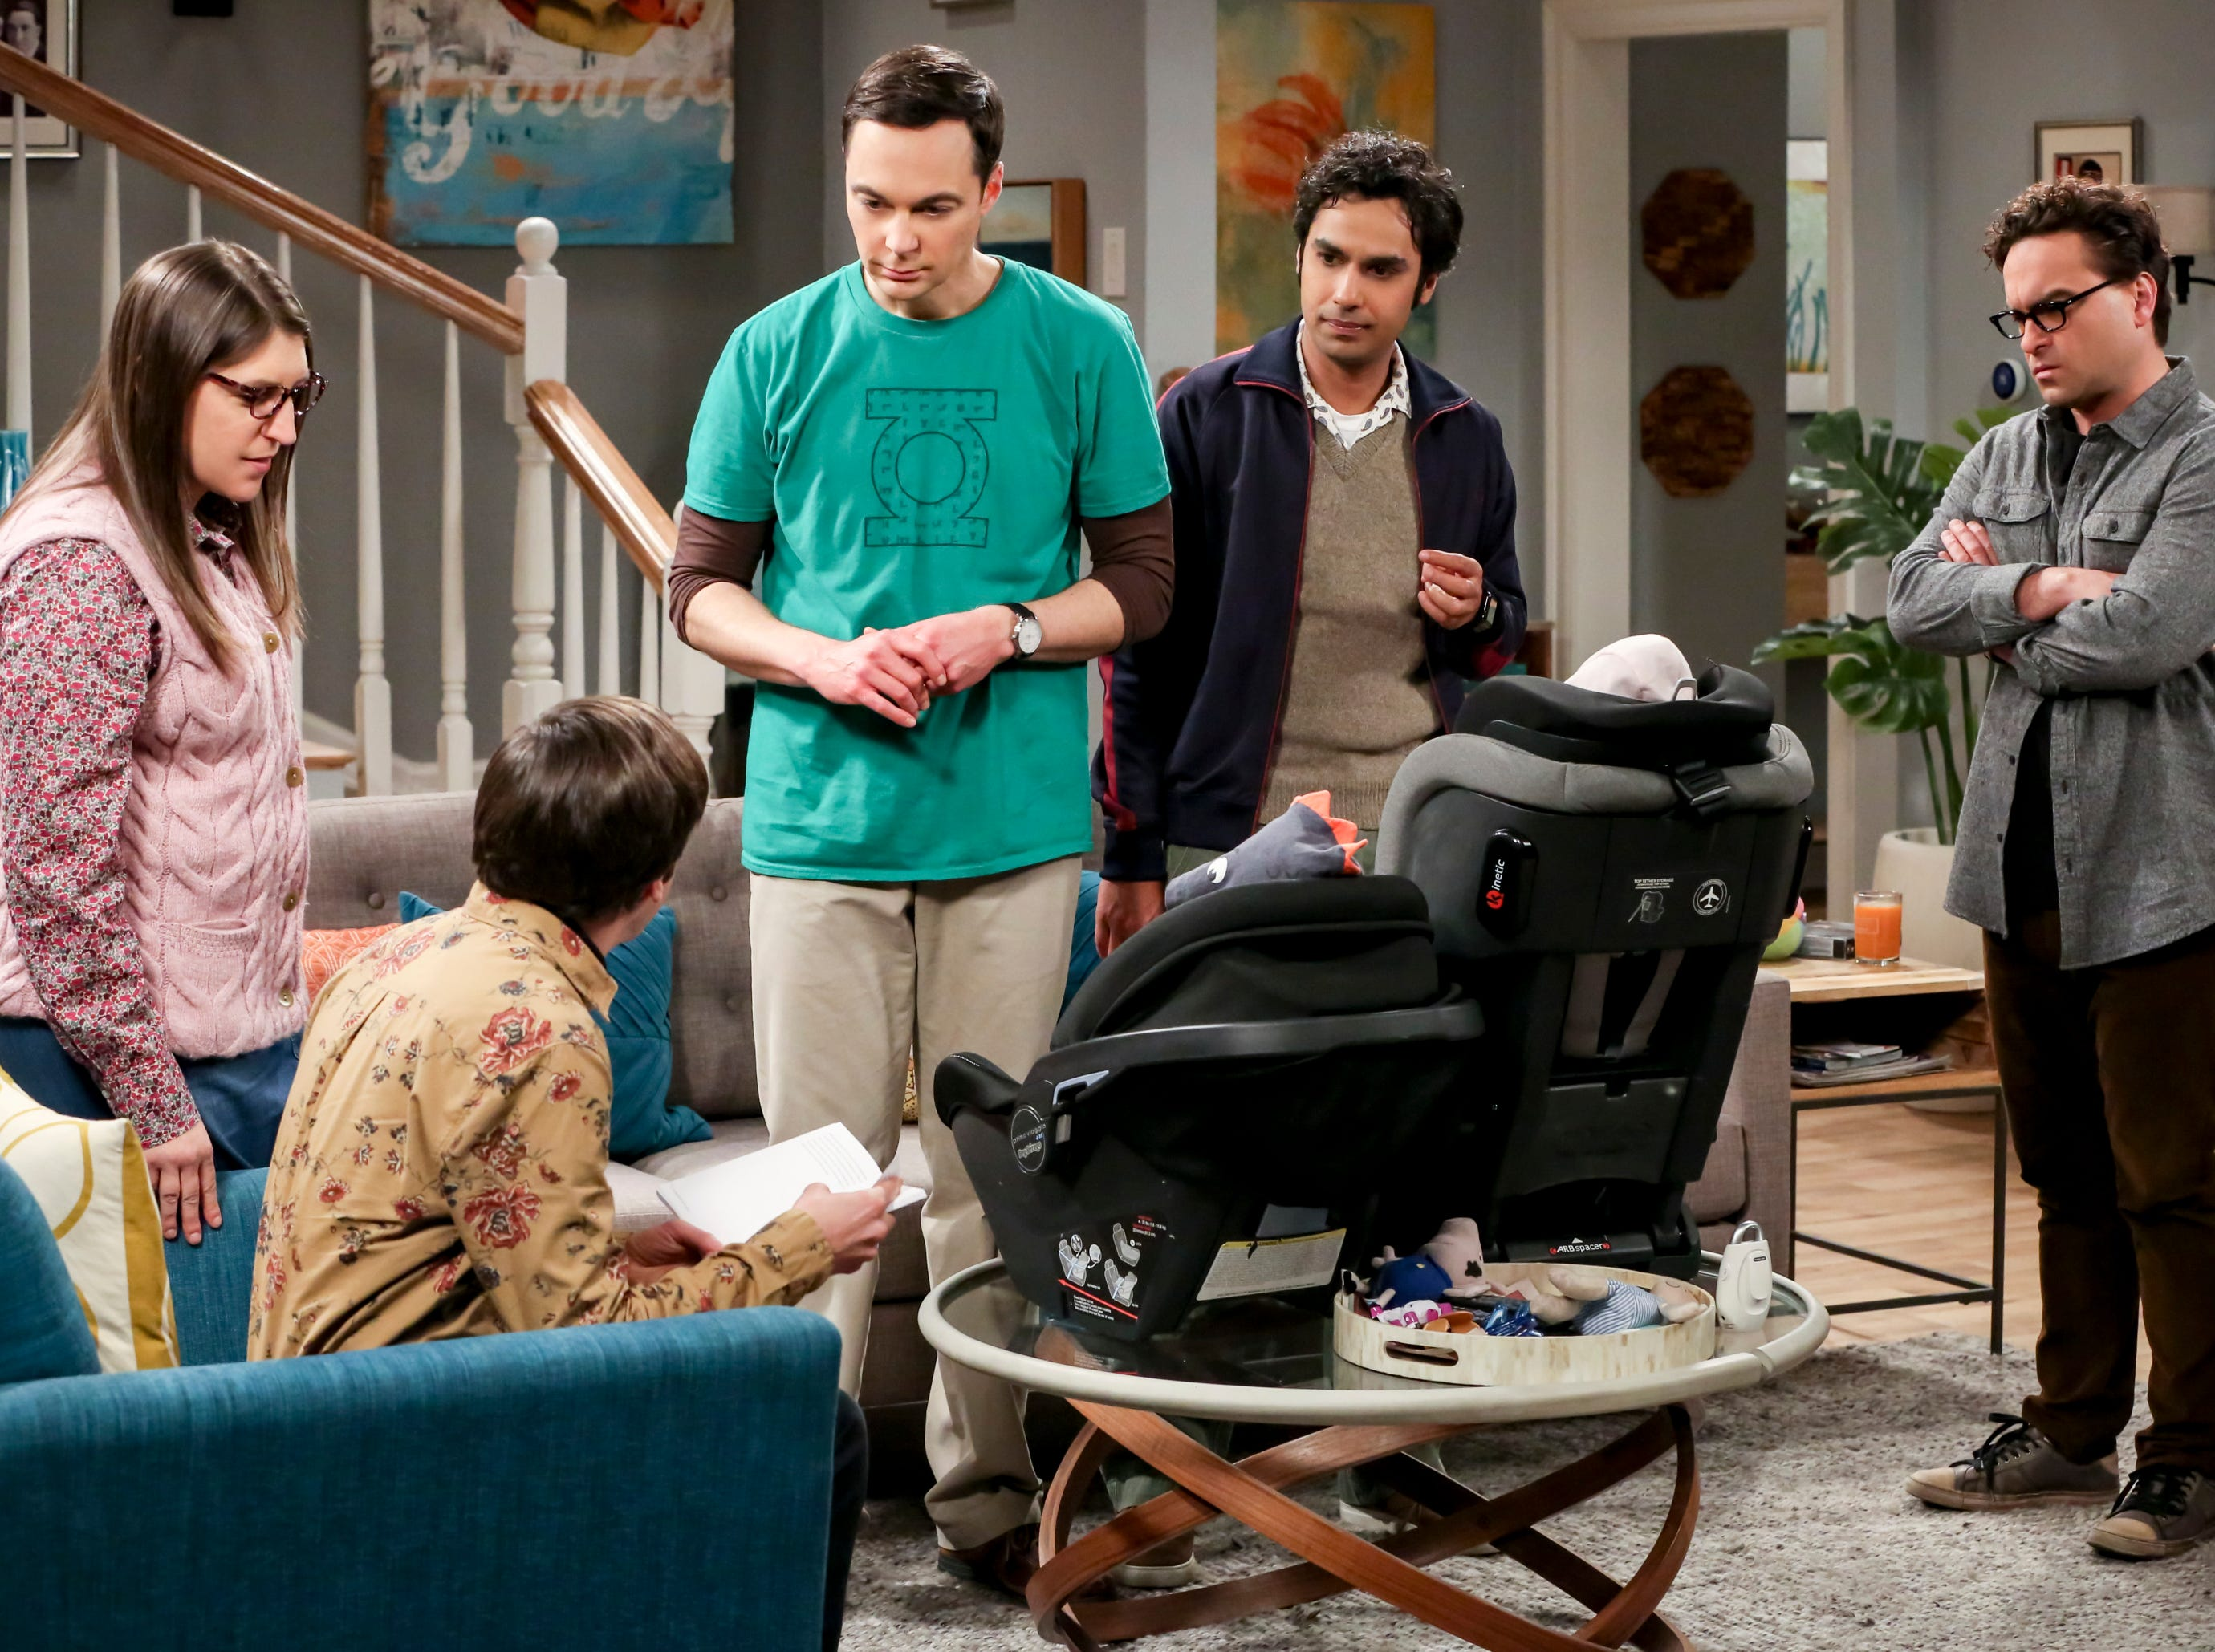 """A scene from Thursday's episode of """"The Big Bang Theory"""" on CBS. Delaware author Shaun Gallagher's book """"Experimenting with Babies"""" is featured prominently."""